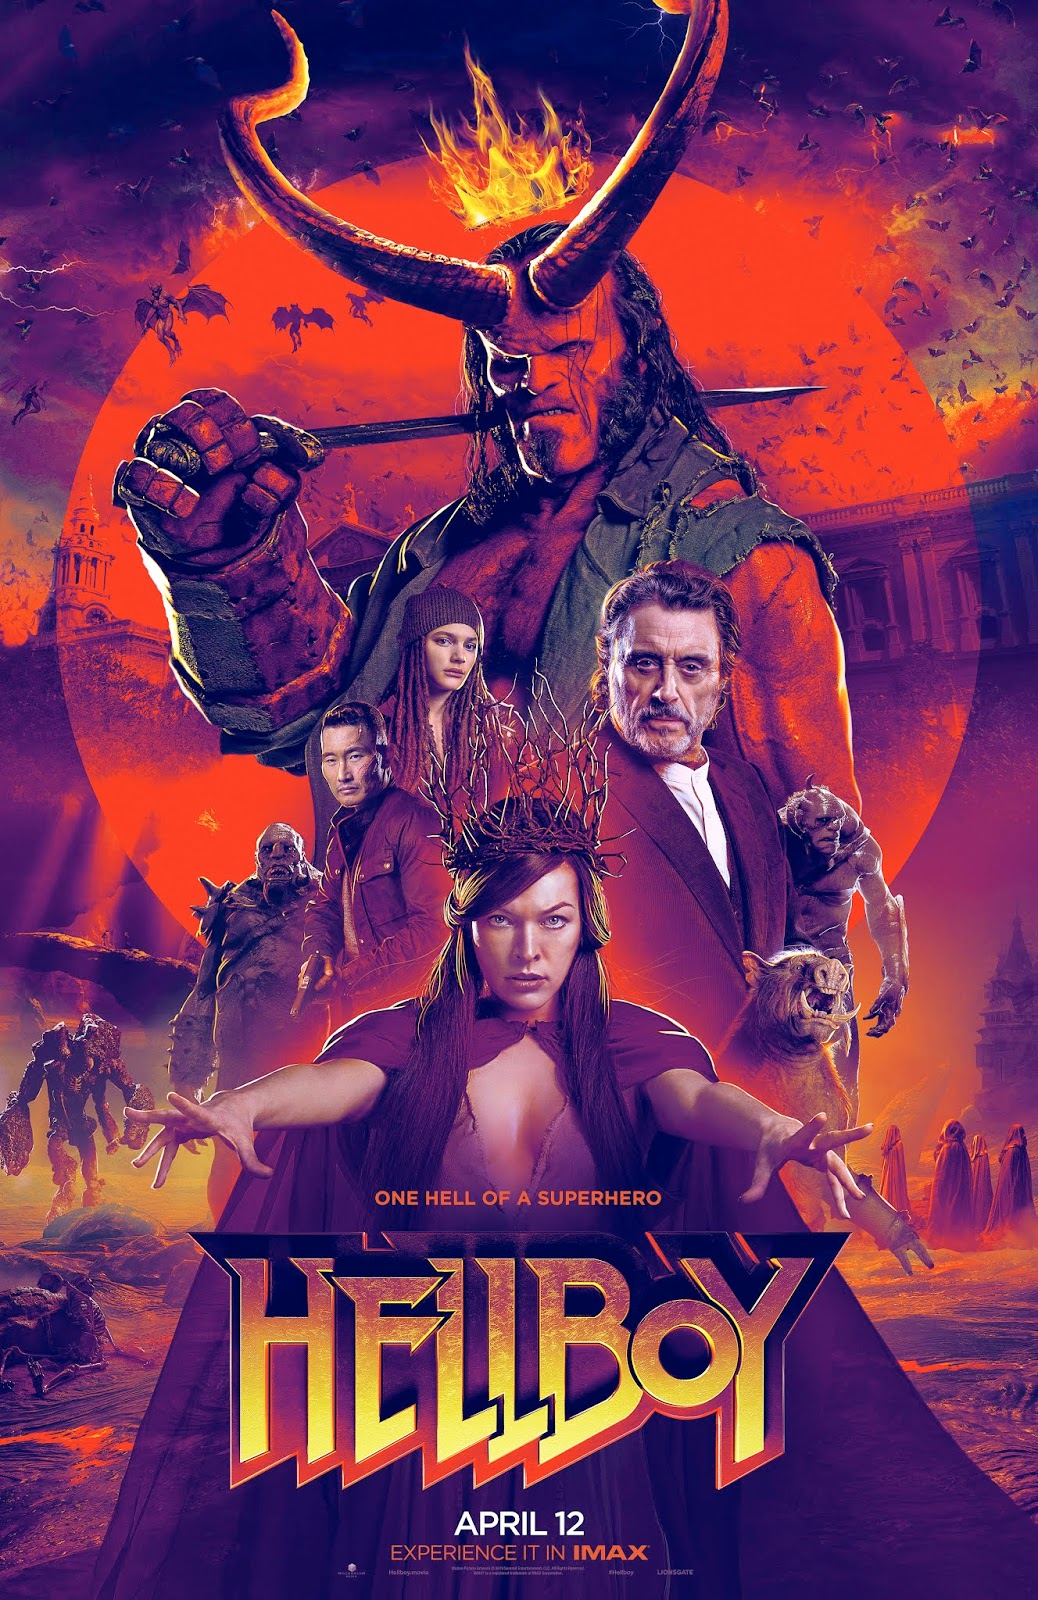 Directed by Neil Marshall. the Hellboy reboot movie hits theaters on April 12.